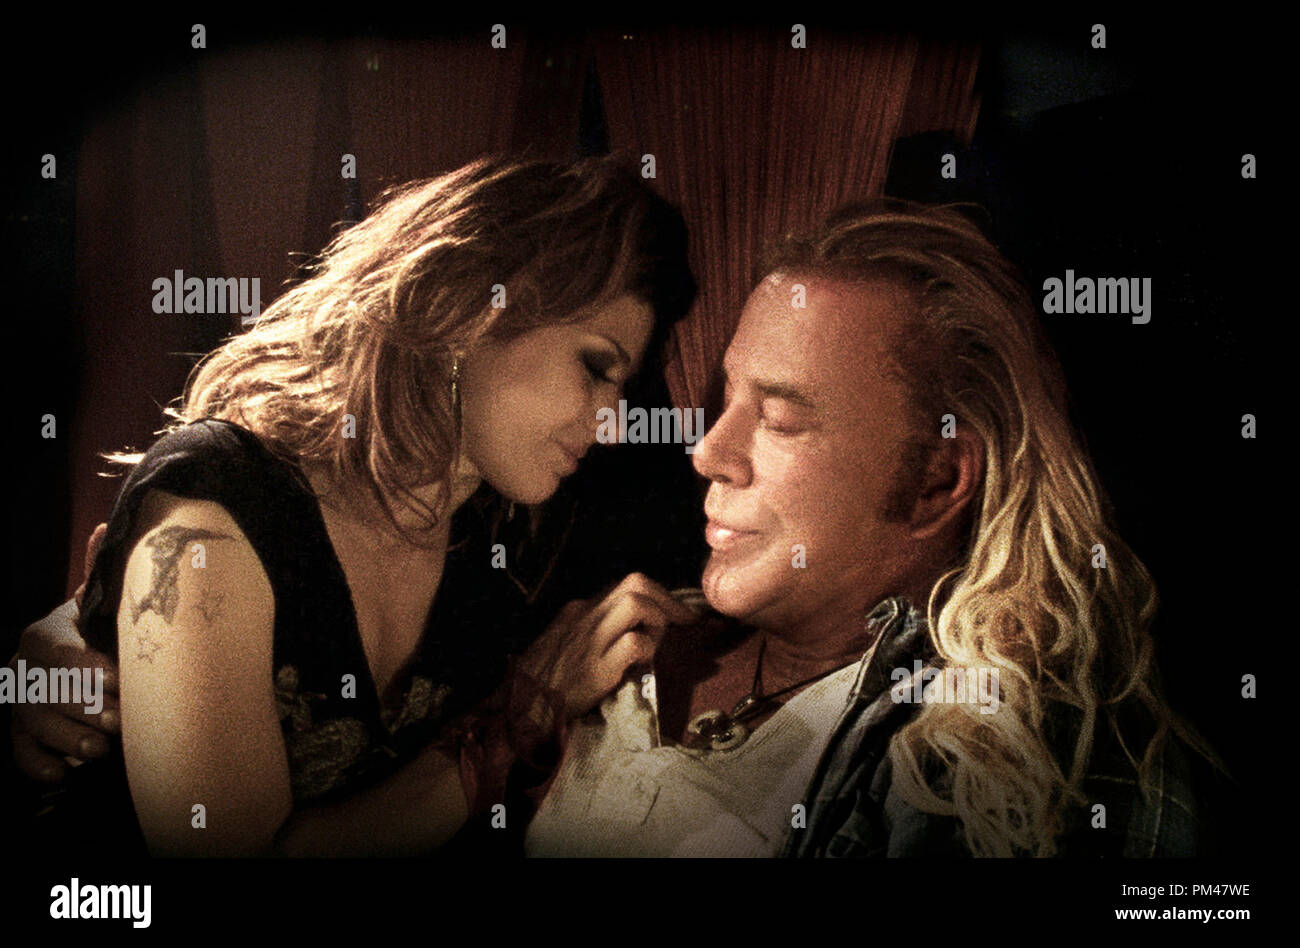 From Left: Marisa Tomei and Mickey Rourke in  'The Wrestler' 2008 - Stock Image